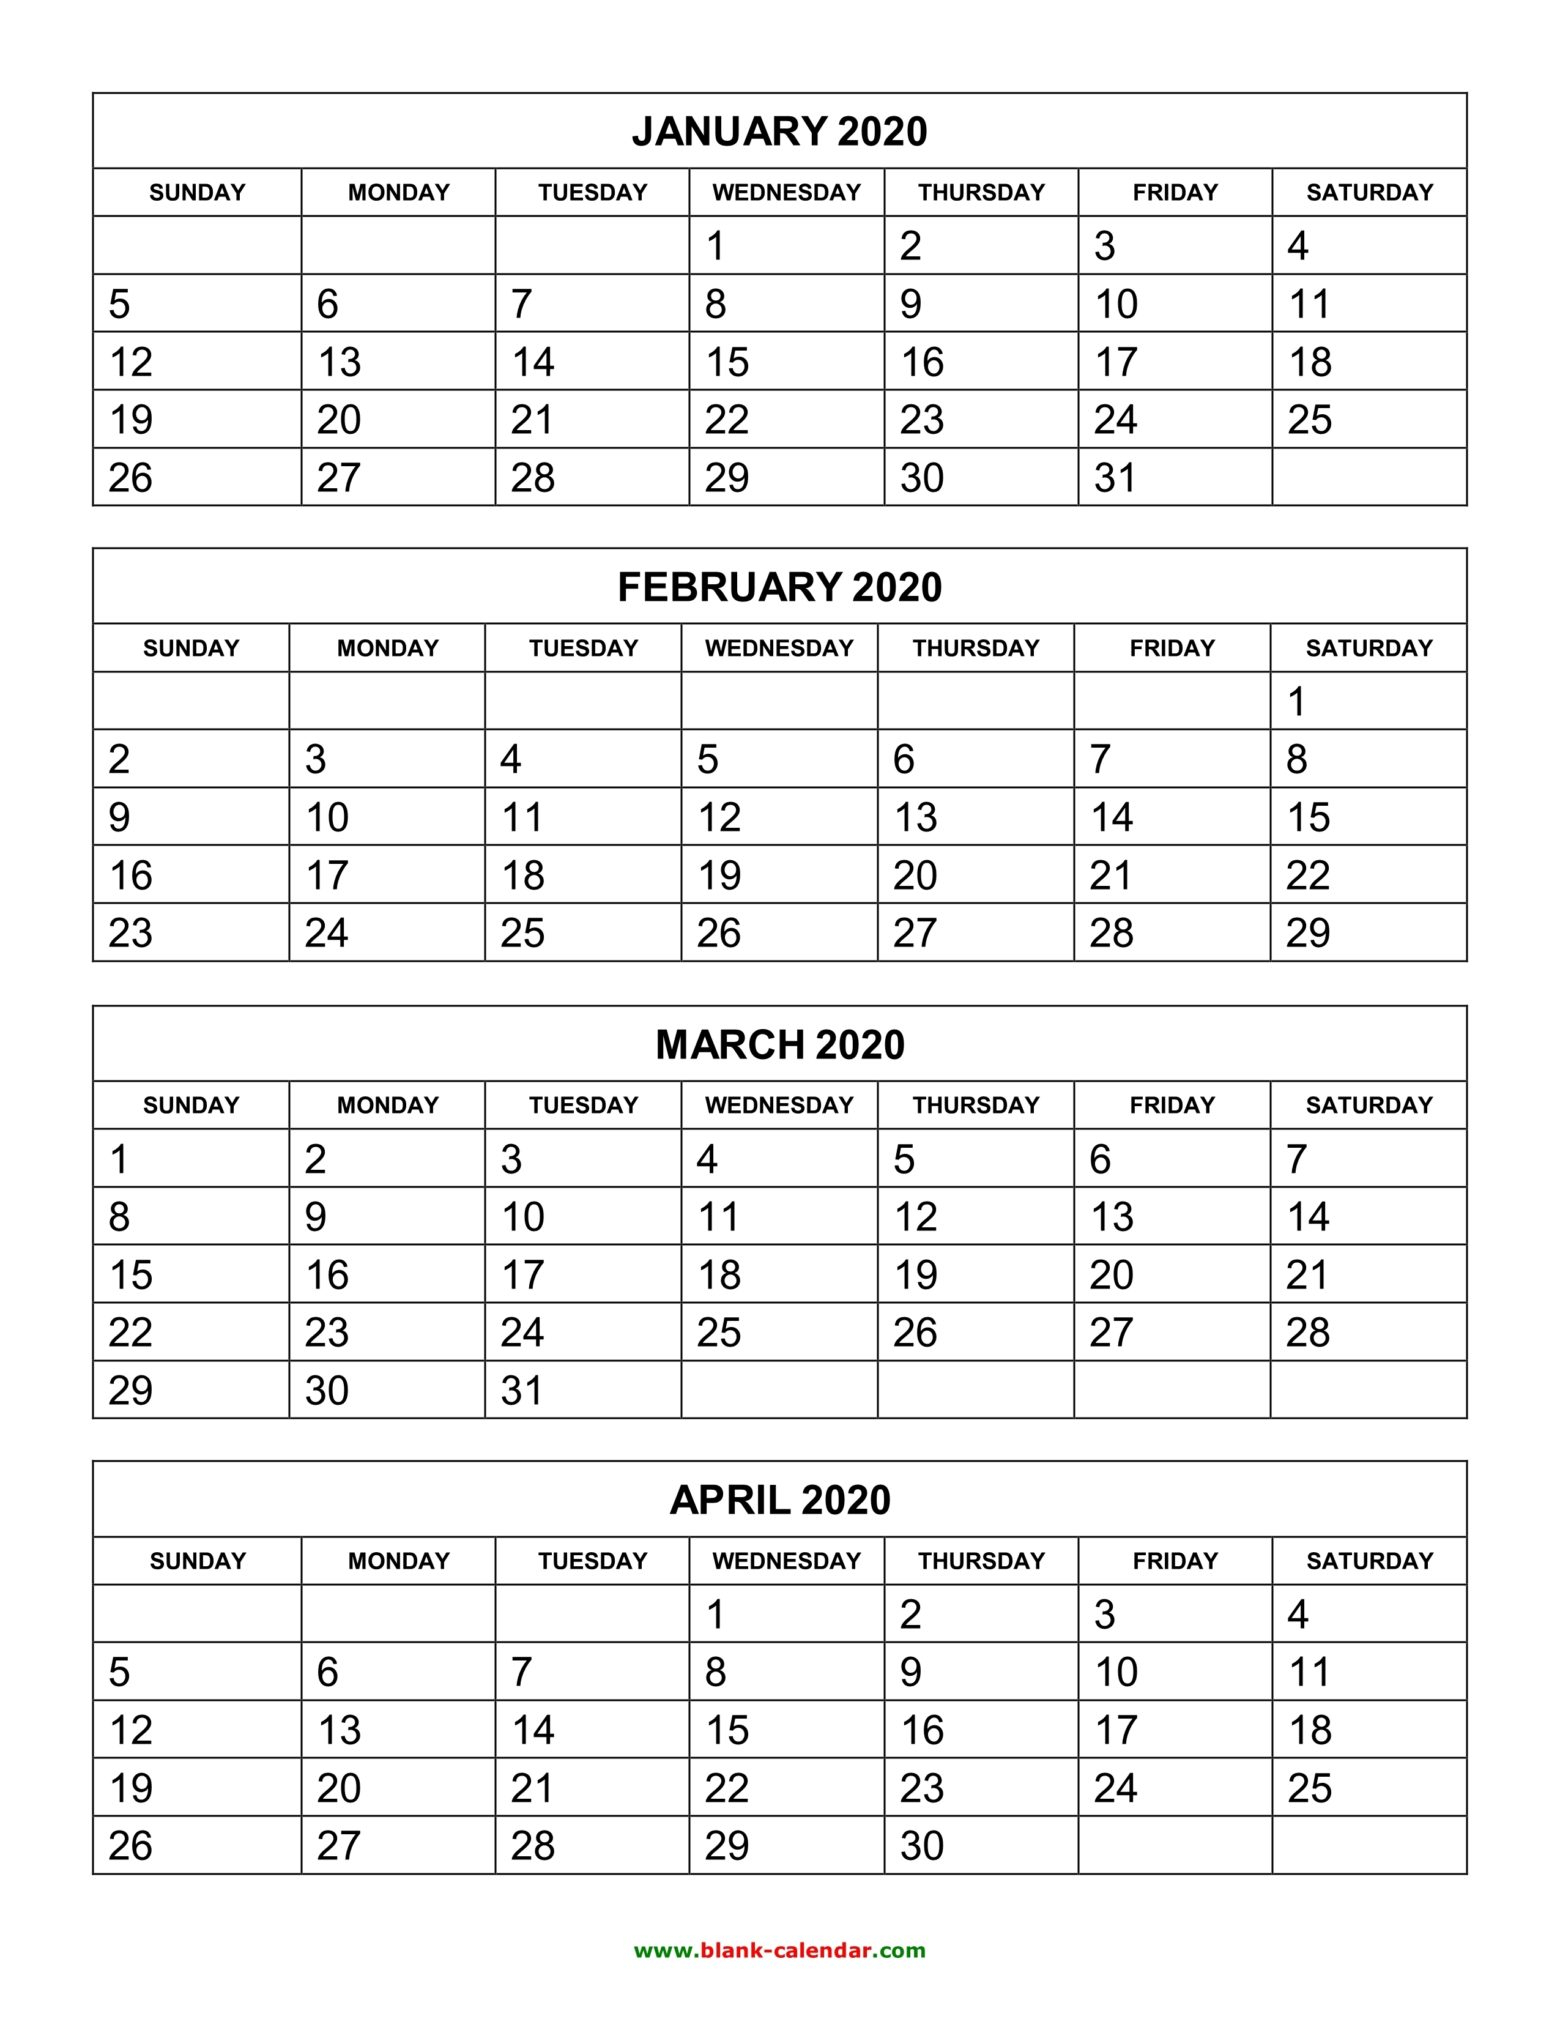 1A84C41 Printable Calendar 6 Months Per Page C Template with regard to Free Printable 6 Month Calendar